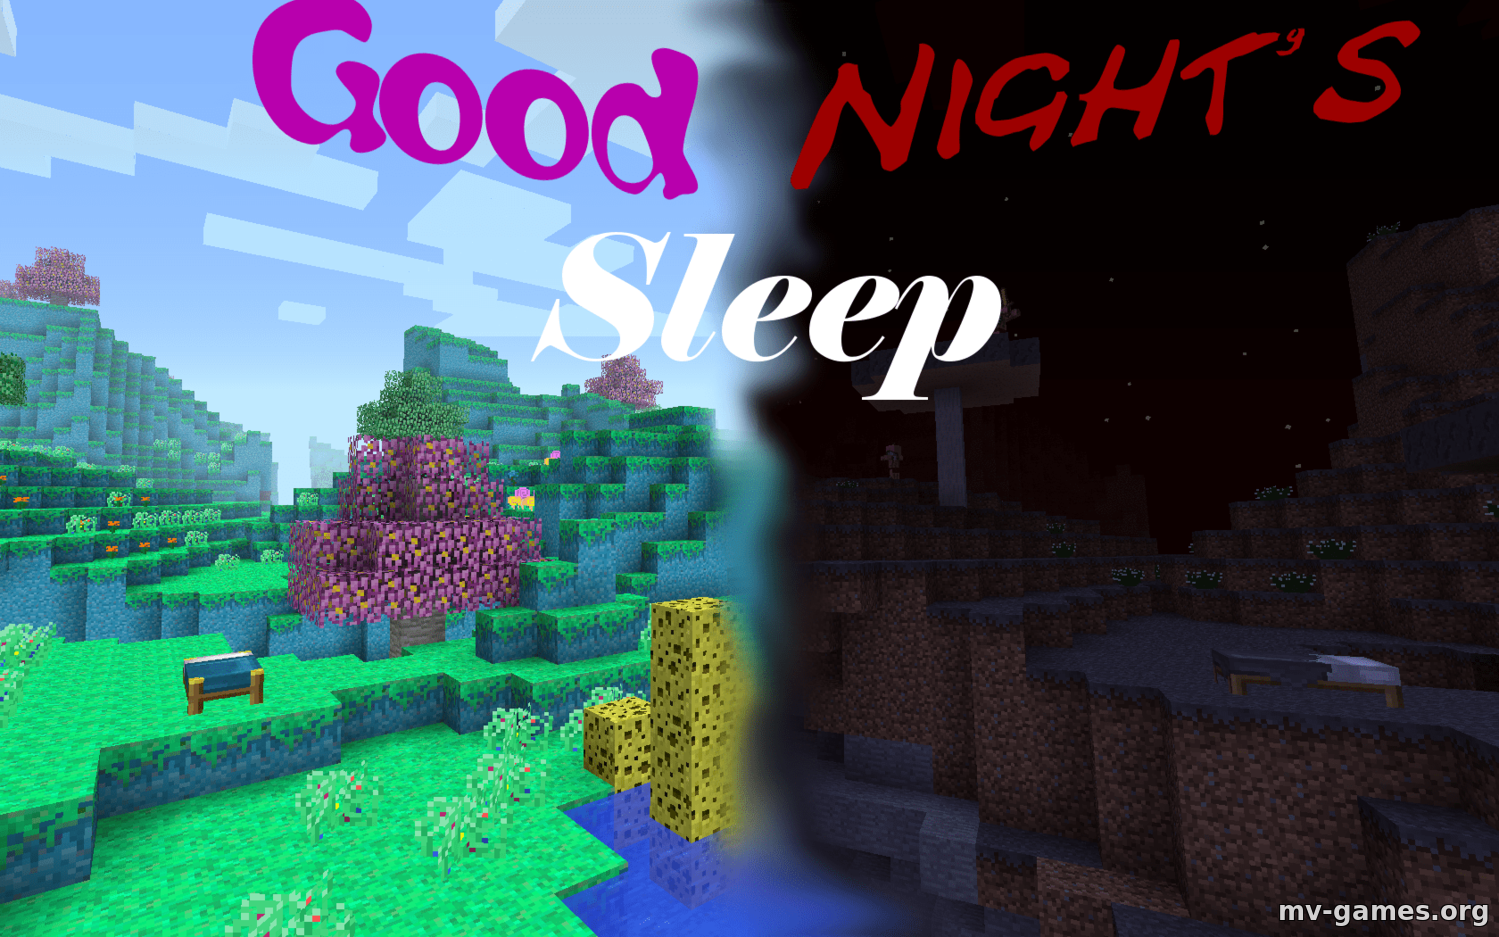 Скачать Мод Good Night's Sleep для Minecraft 1.16.2 Бесплатно